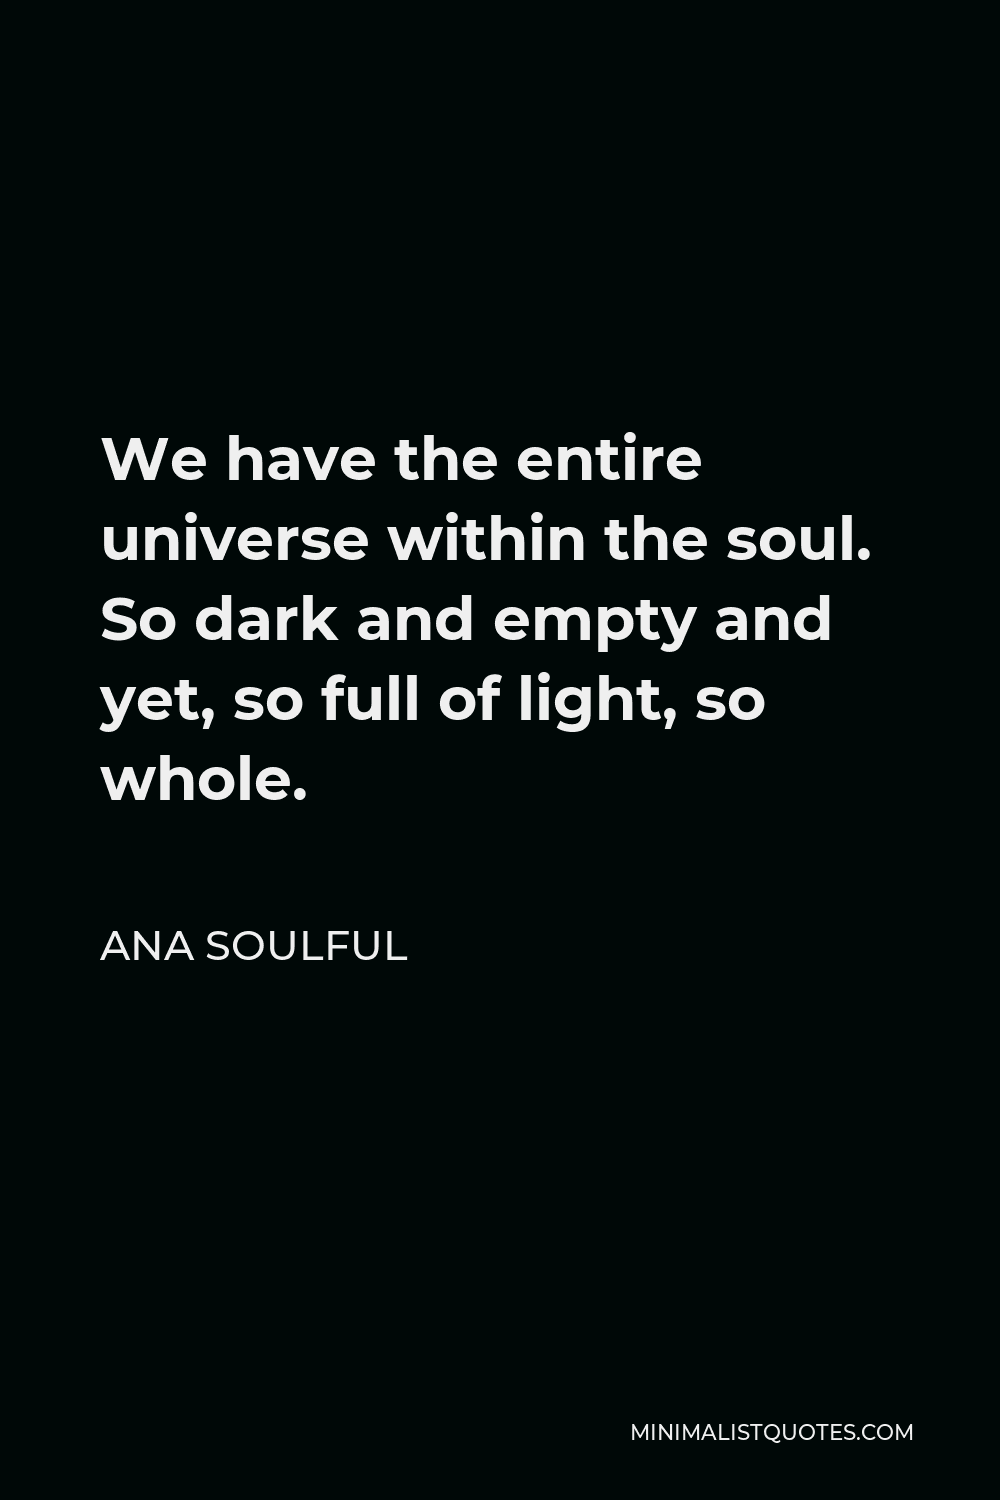 Ana Soulful Quote - We have the entire universe within the soul. So dark and empty and yet, so full of light, so whole.